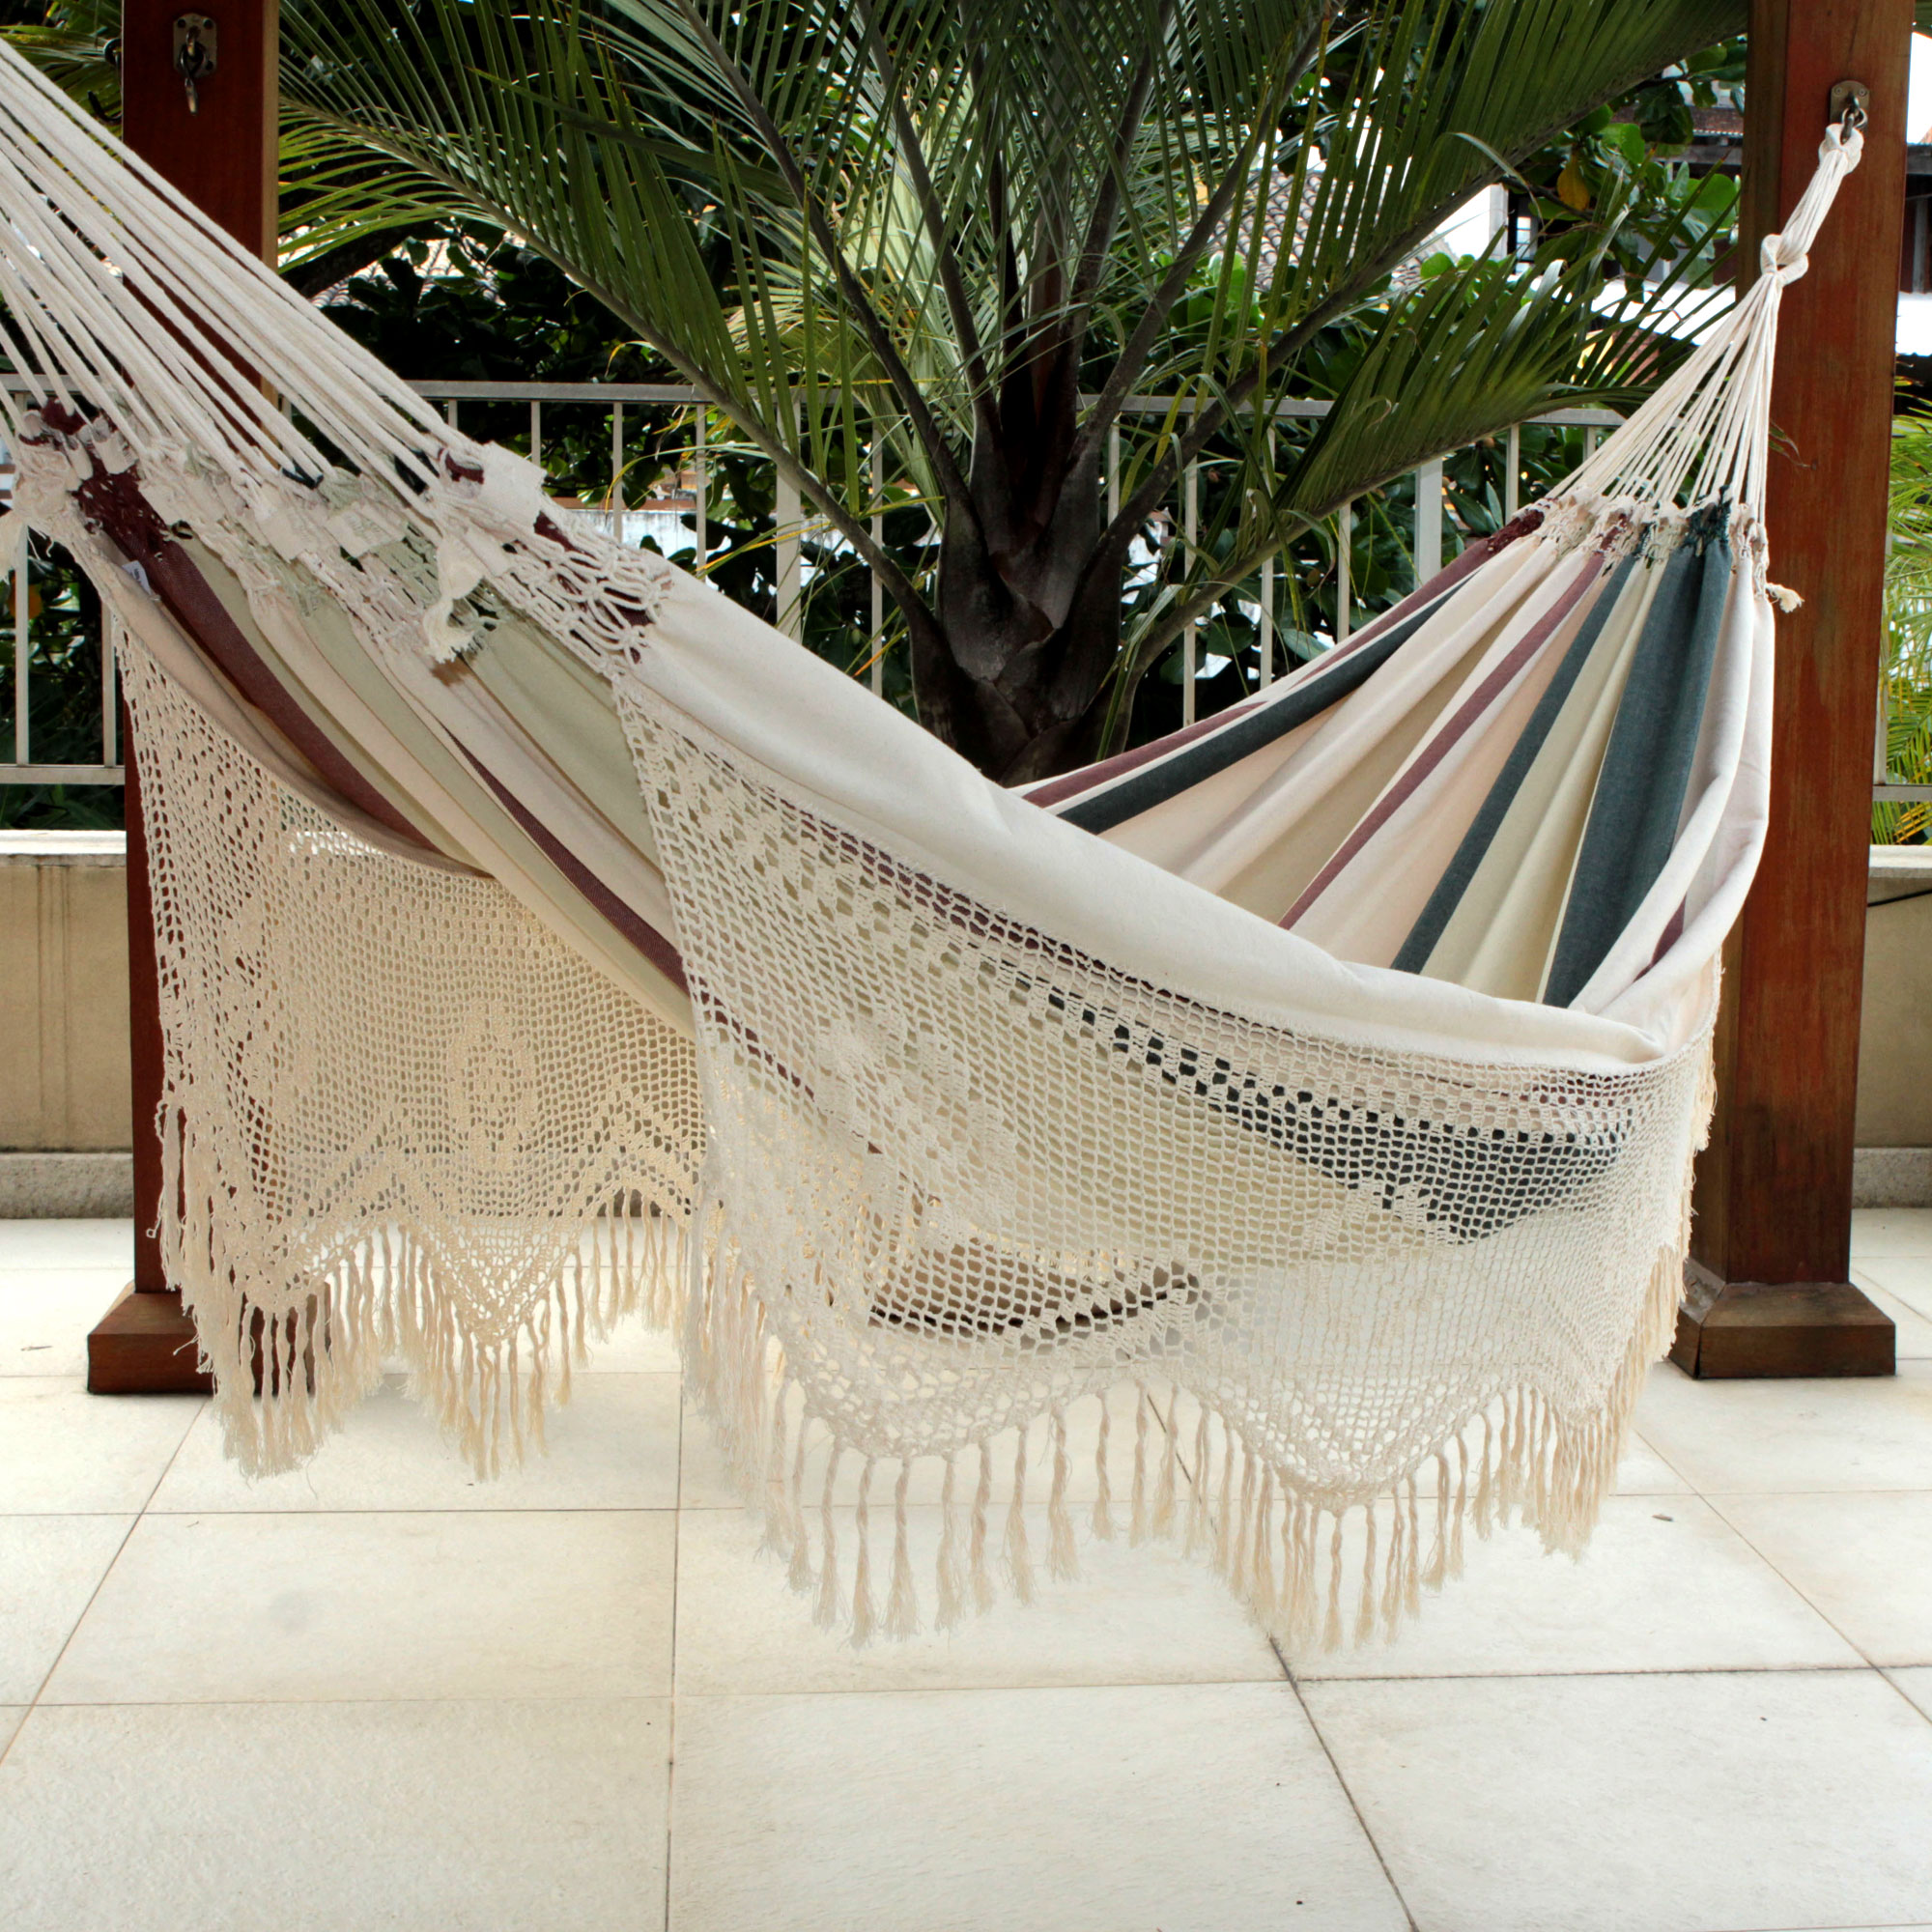 Cotton hammock, Joyous Earth, hammock, home hand woven decor unique mother's day gifts